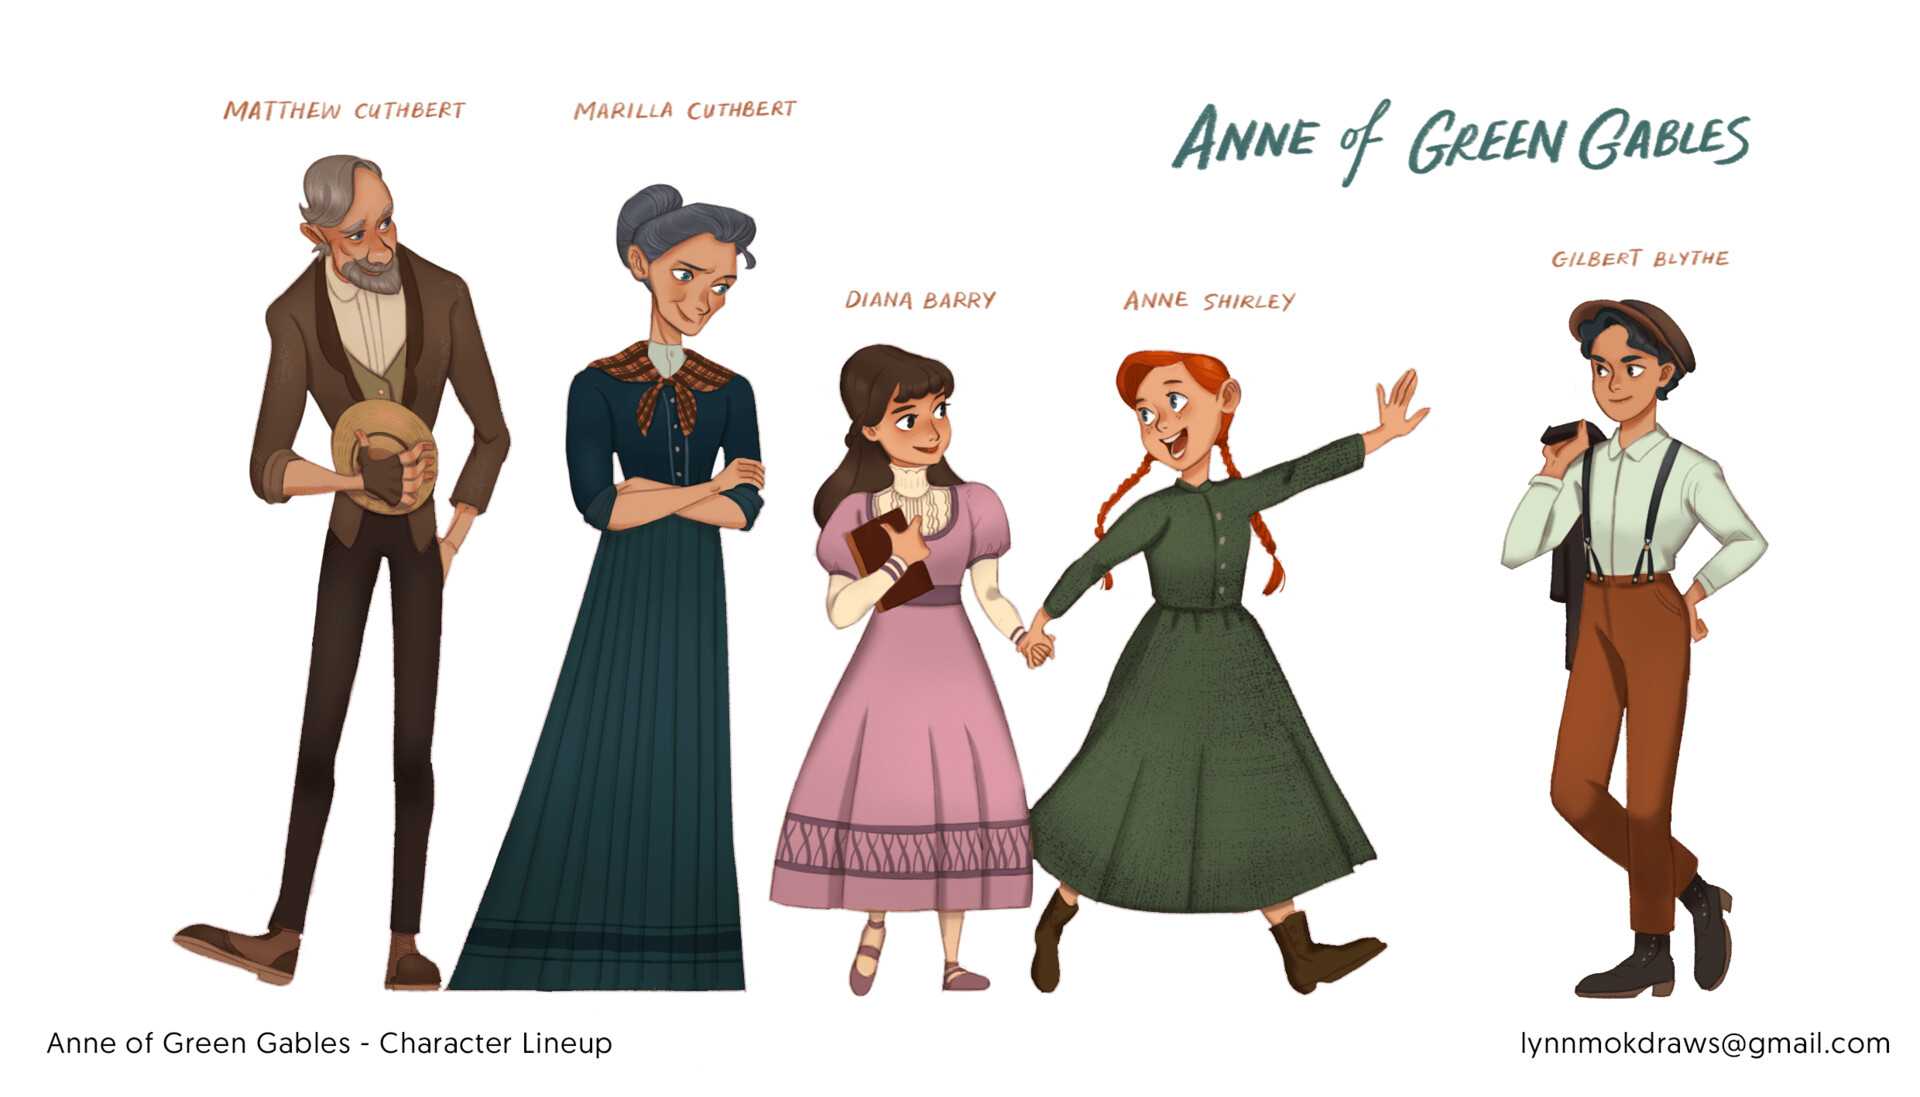 Characters in their respective Edwardian Era costumes